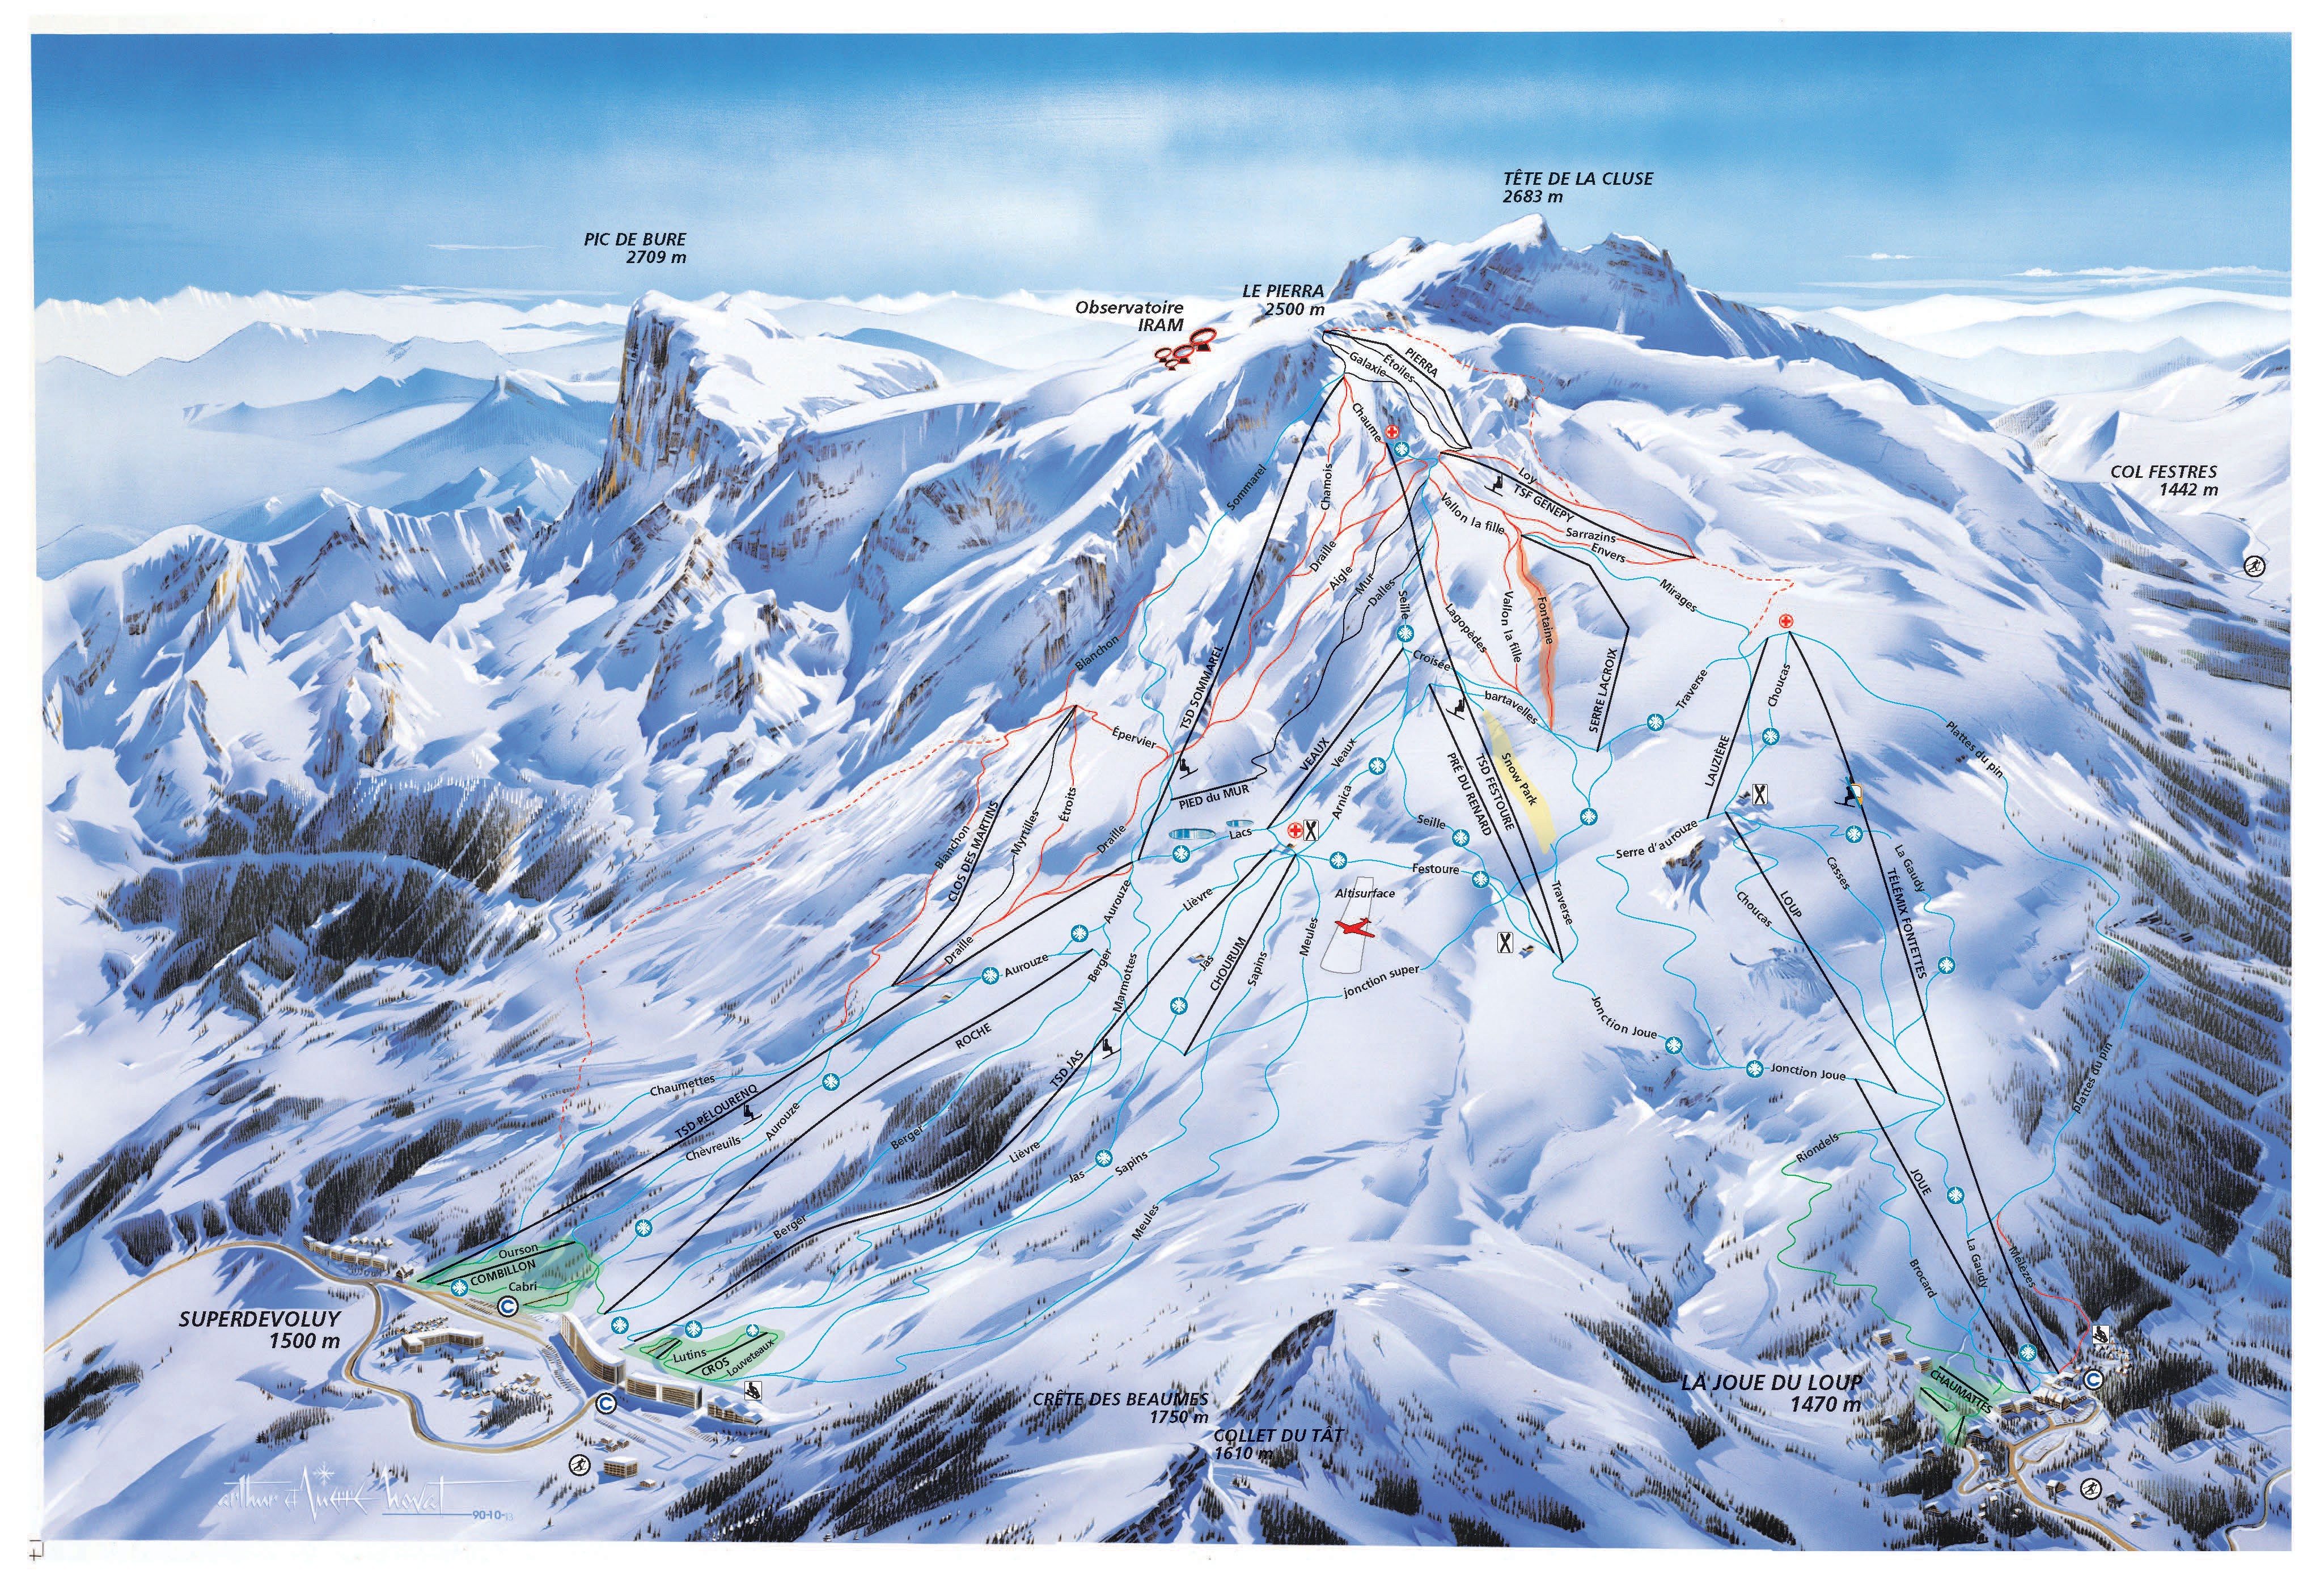 Plan des pistes ski alpin le d voluy office de tourisme for Piste de ski interieur